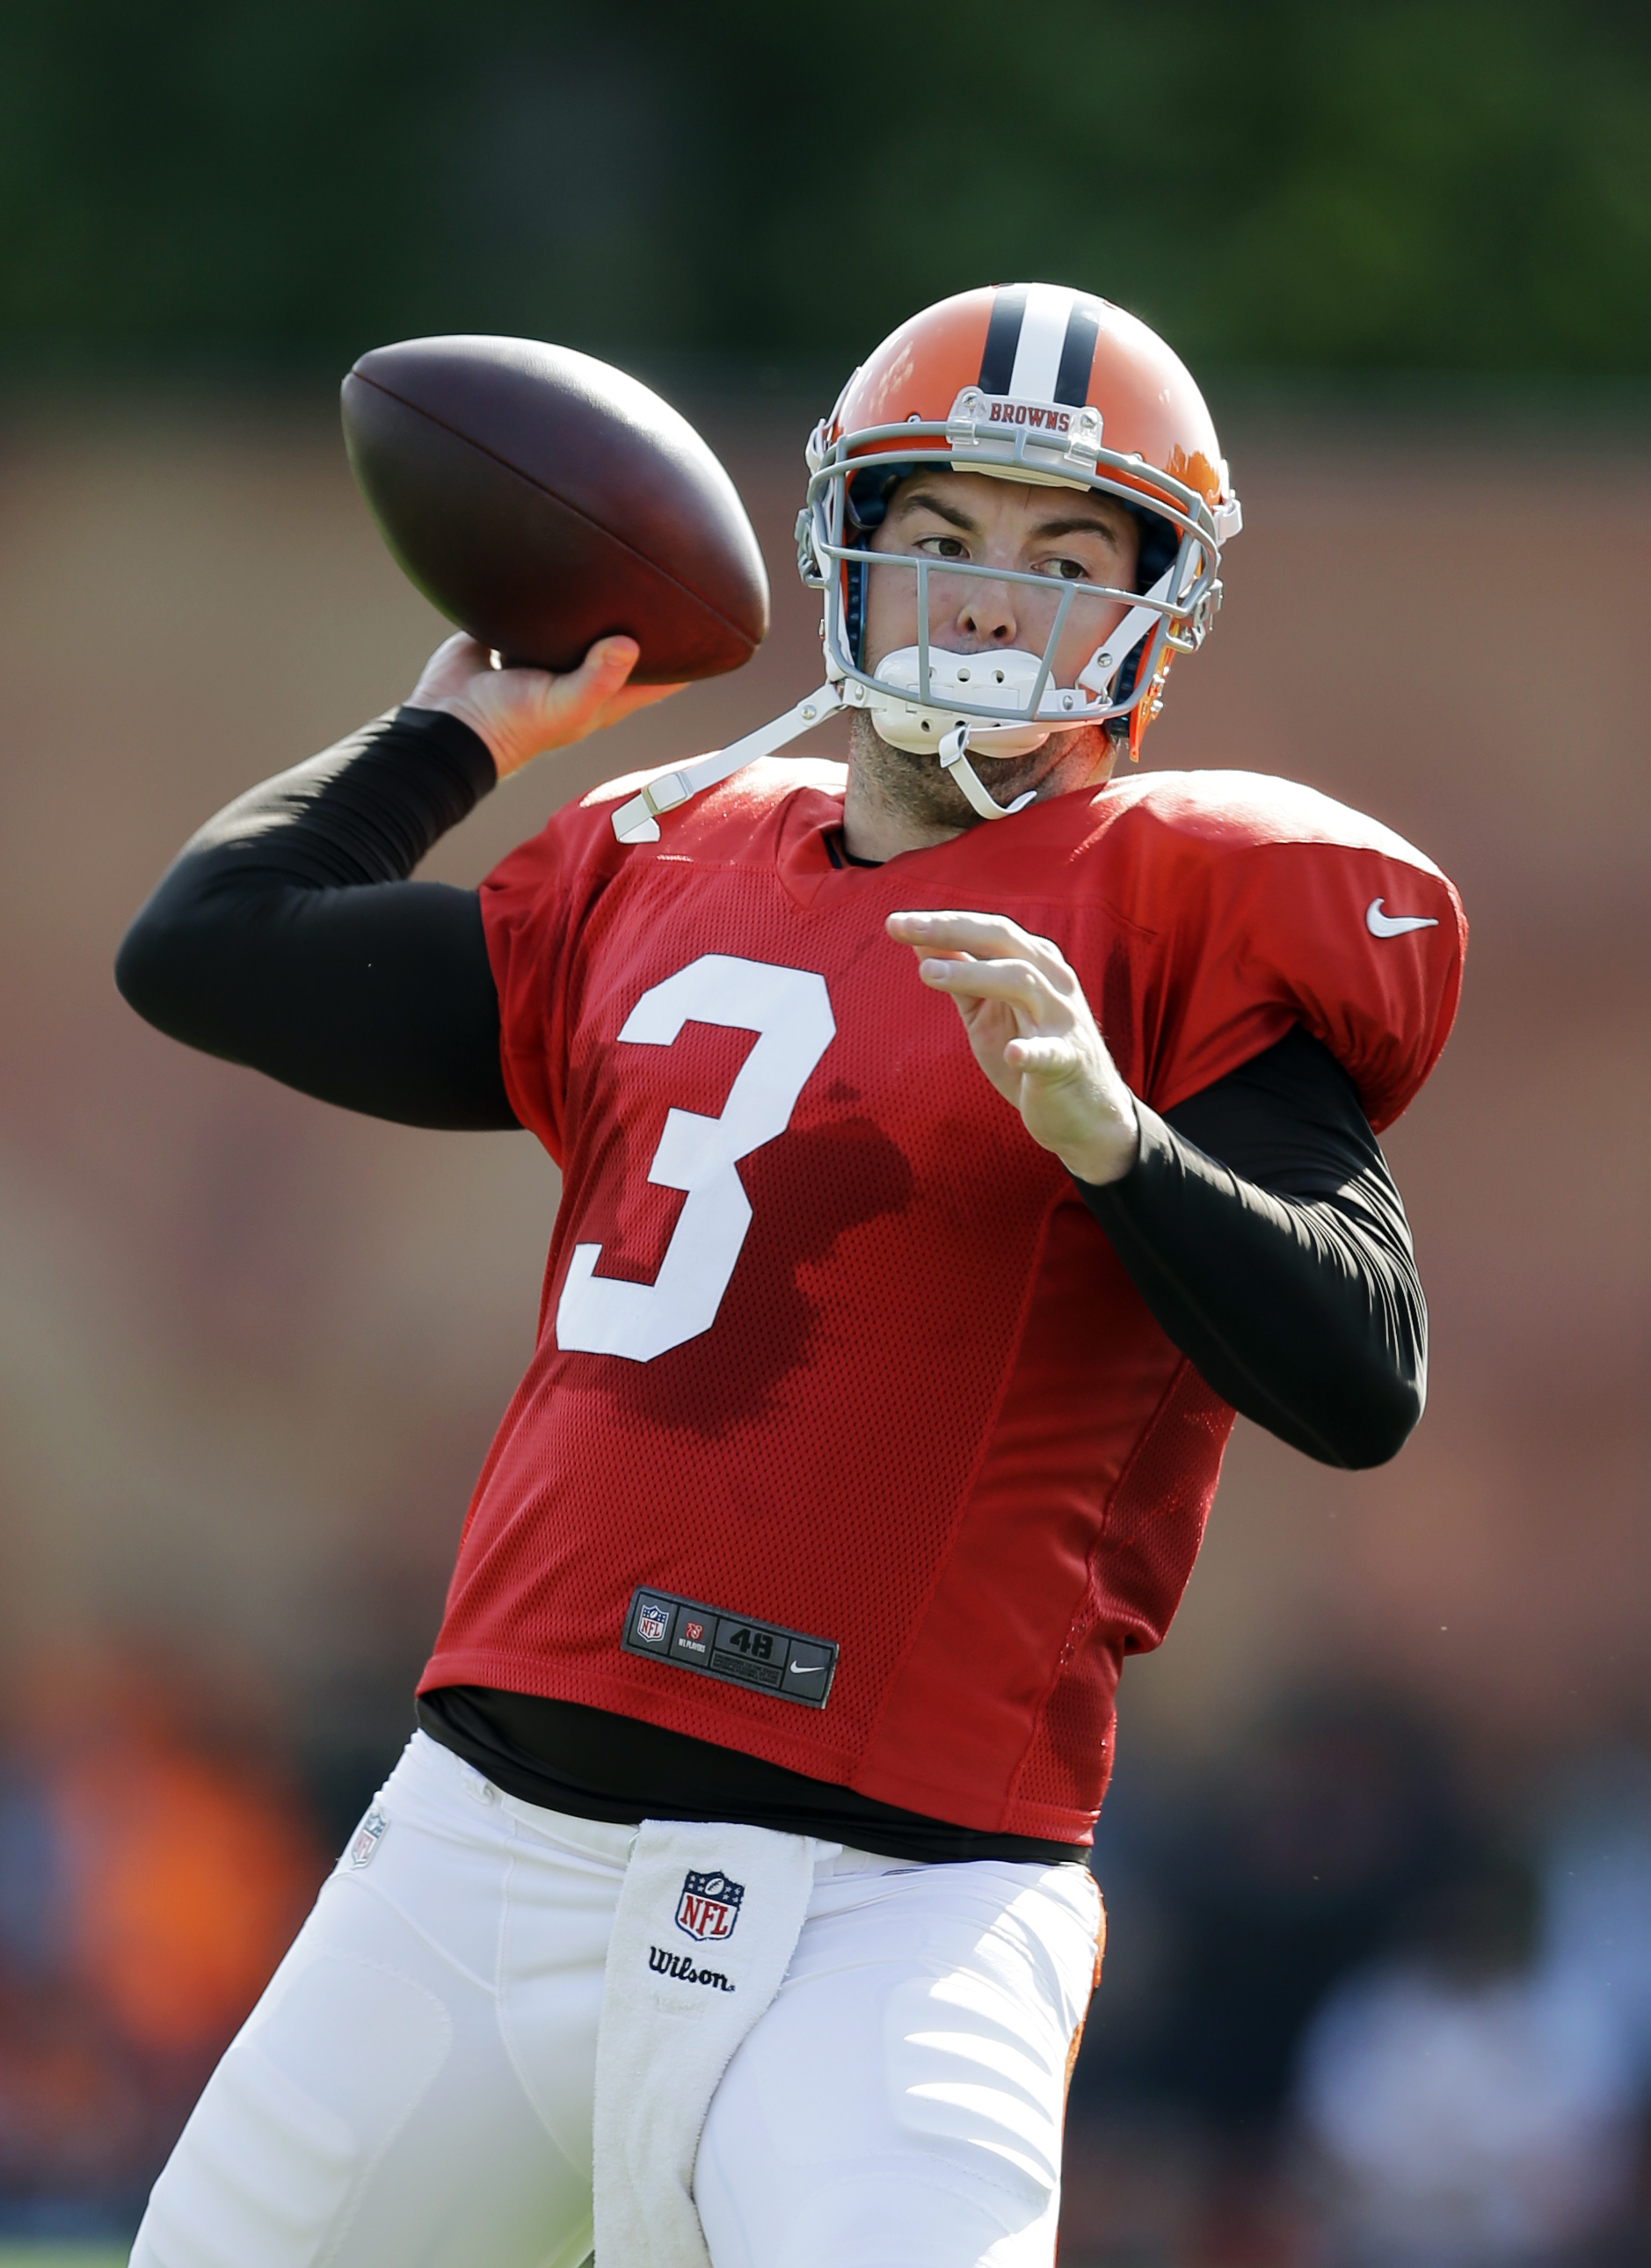 FILE - In this Aug. 19, 2014, file photo, Cleveland Browns quarterback Rex Grossman passes during practice at NFL football training camp in Berea, Ohio. The Atlanta Falcons have signed Rex Grossman to compete for the backup quarterback job behind Matt Rya